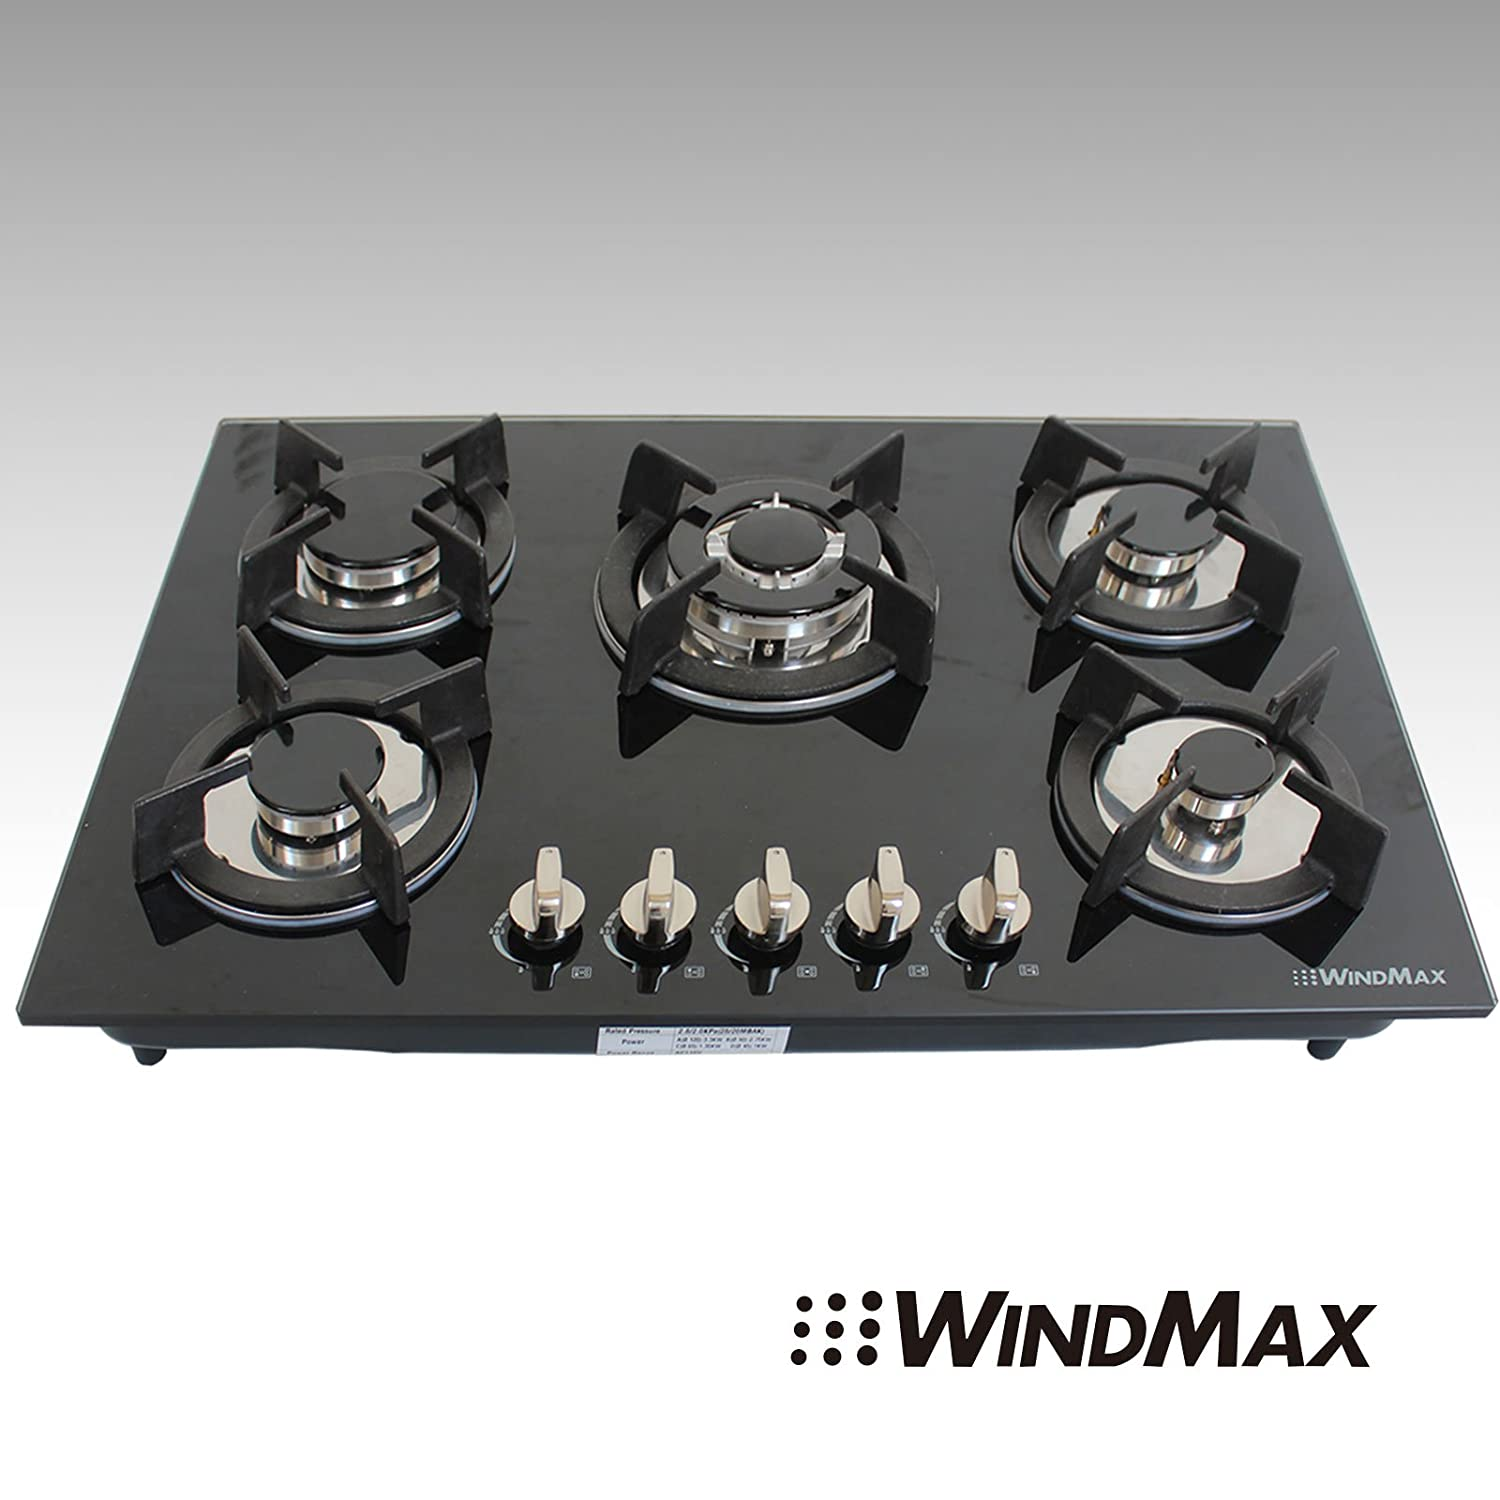 "Windmax 30"" Euro Design Black Tempered Glass Built-in Kitchen 5 Burners Gas Hob Cooktops"